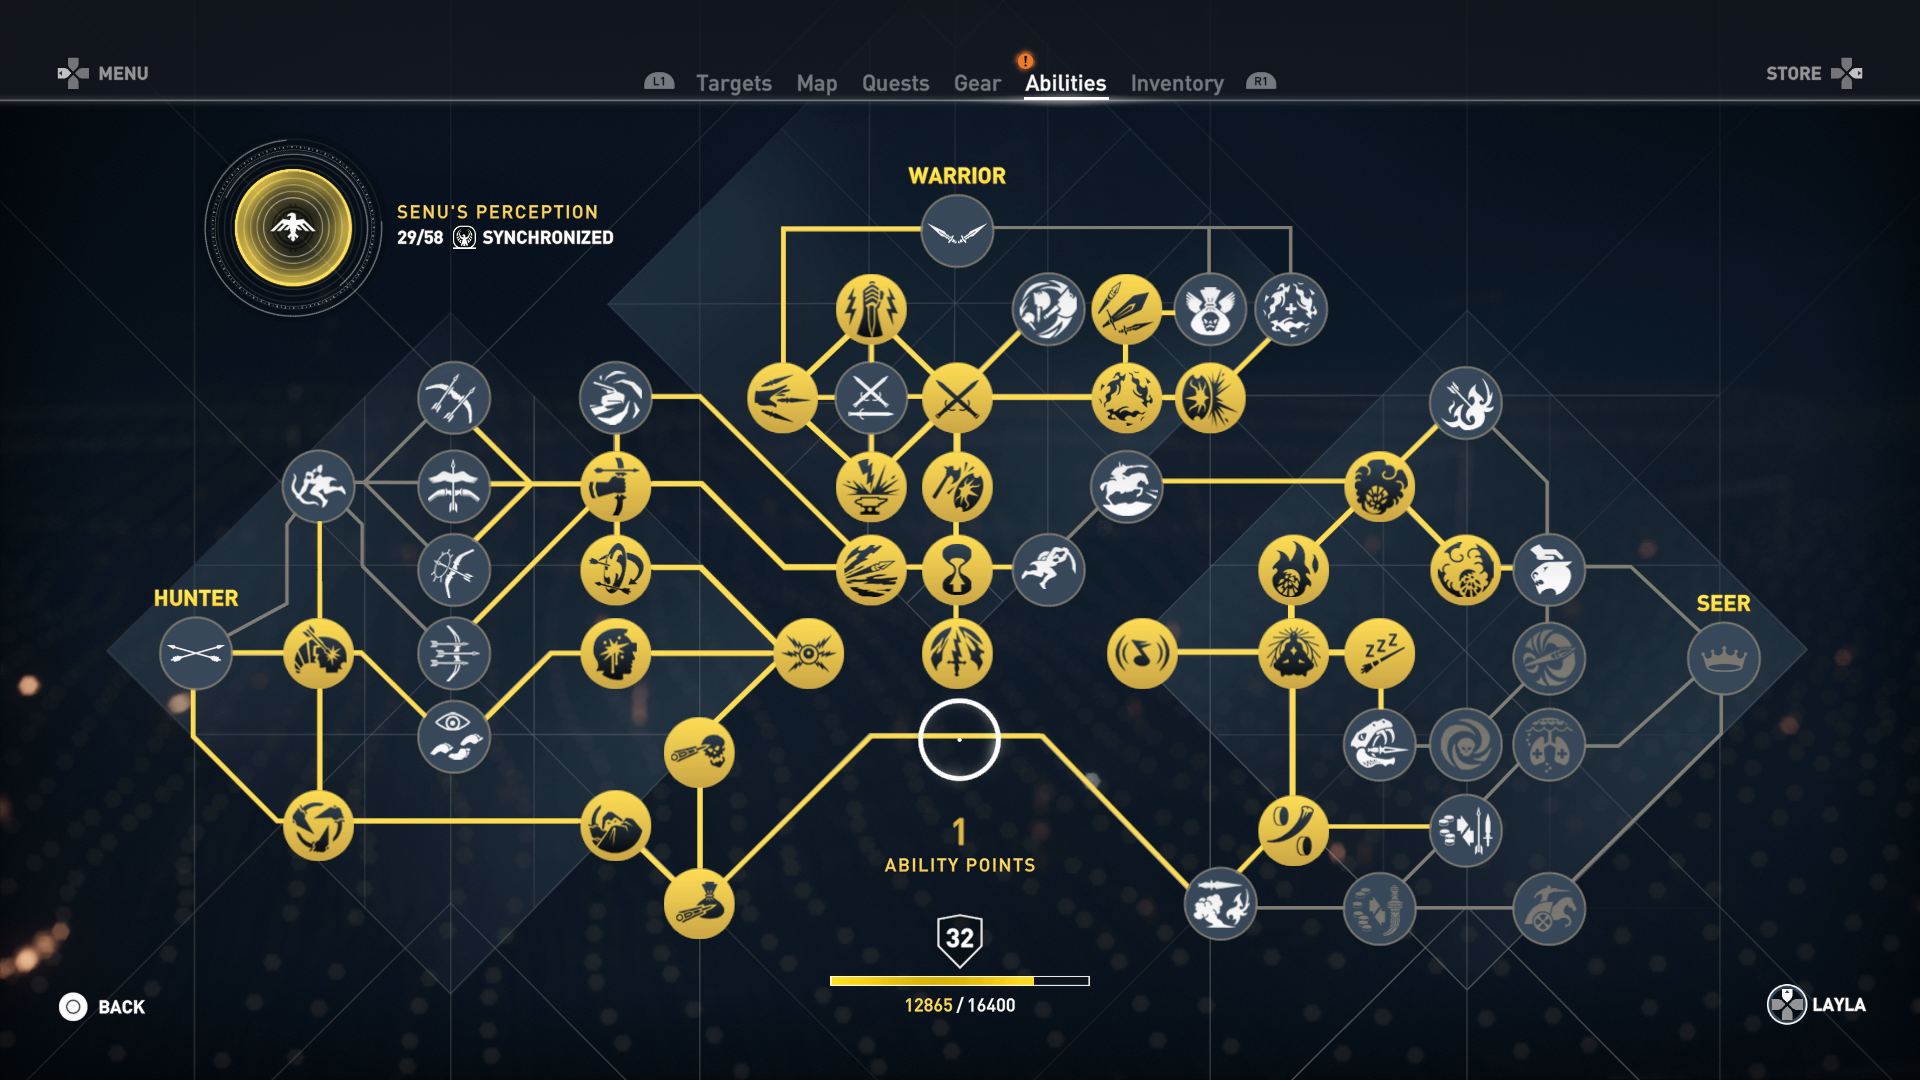 assassin_s-creed-origins-abilities-upgrade-screen.png